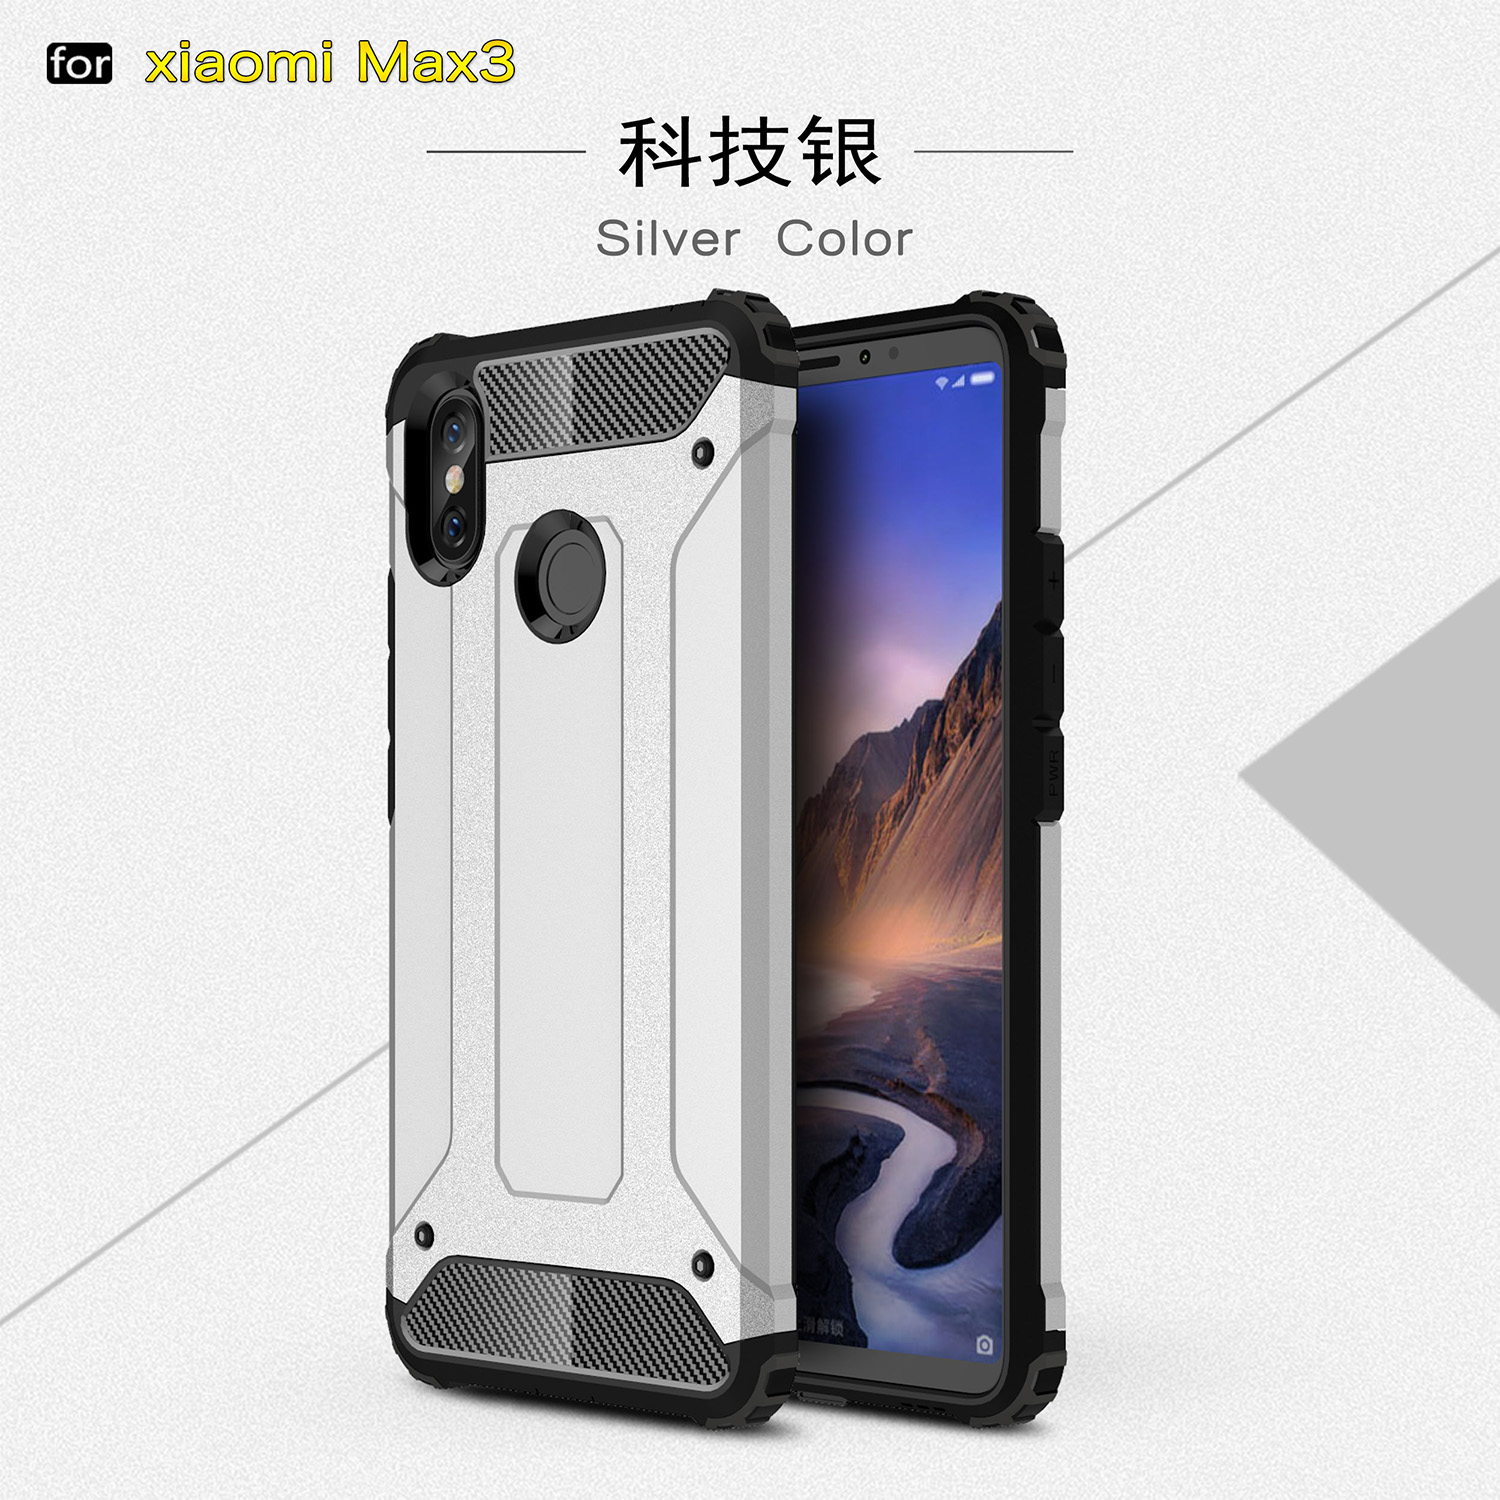 Aliexpress Buy Fitted Phone Case Xiaomi Mi Max 3 Case Silicone Bumper Hybrid Armor PC Cover For Xiaomi Mi Max 3 Case Mi Max 3 Coque 6 9 inch from